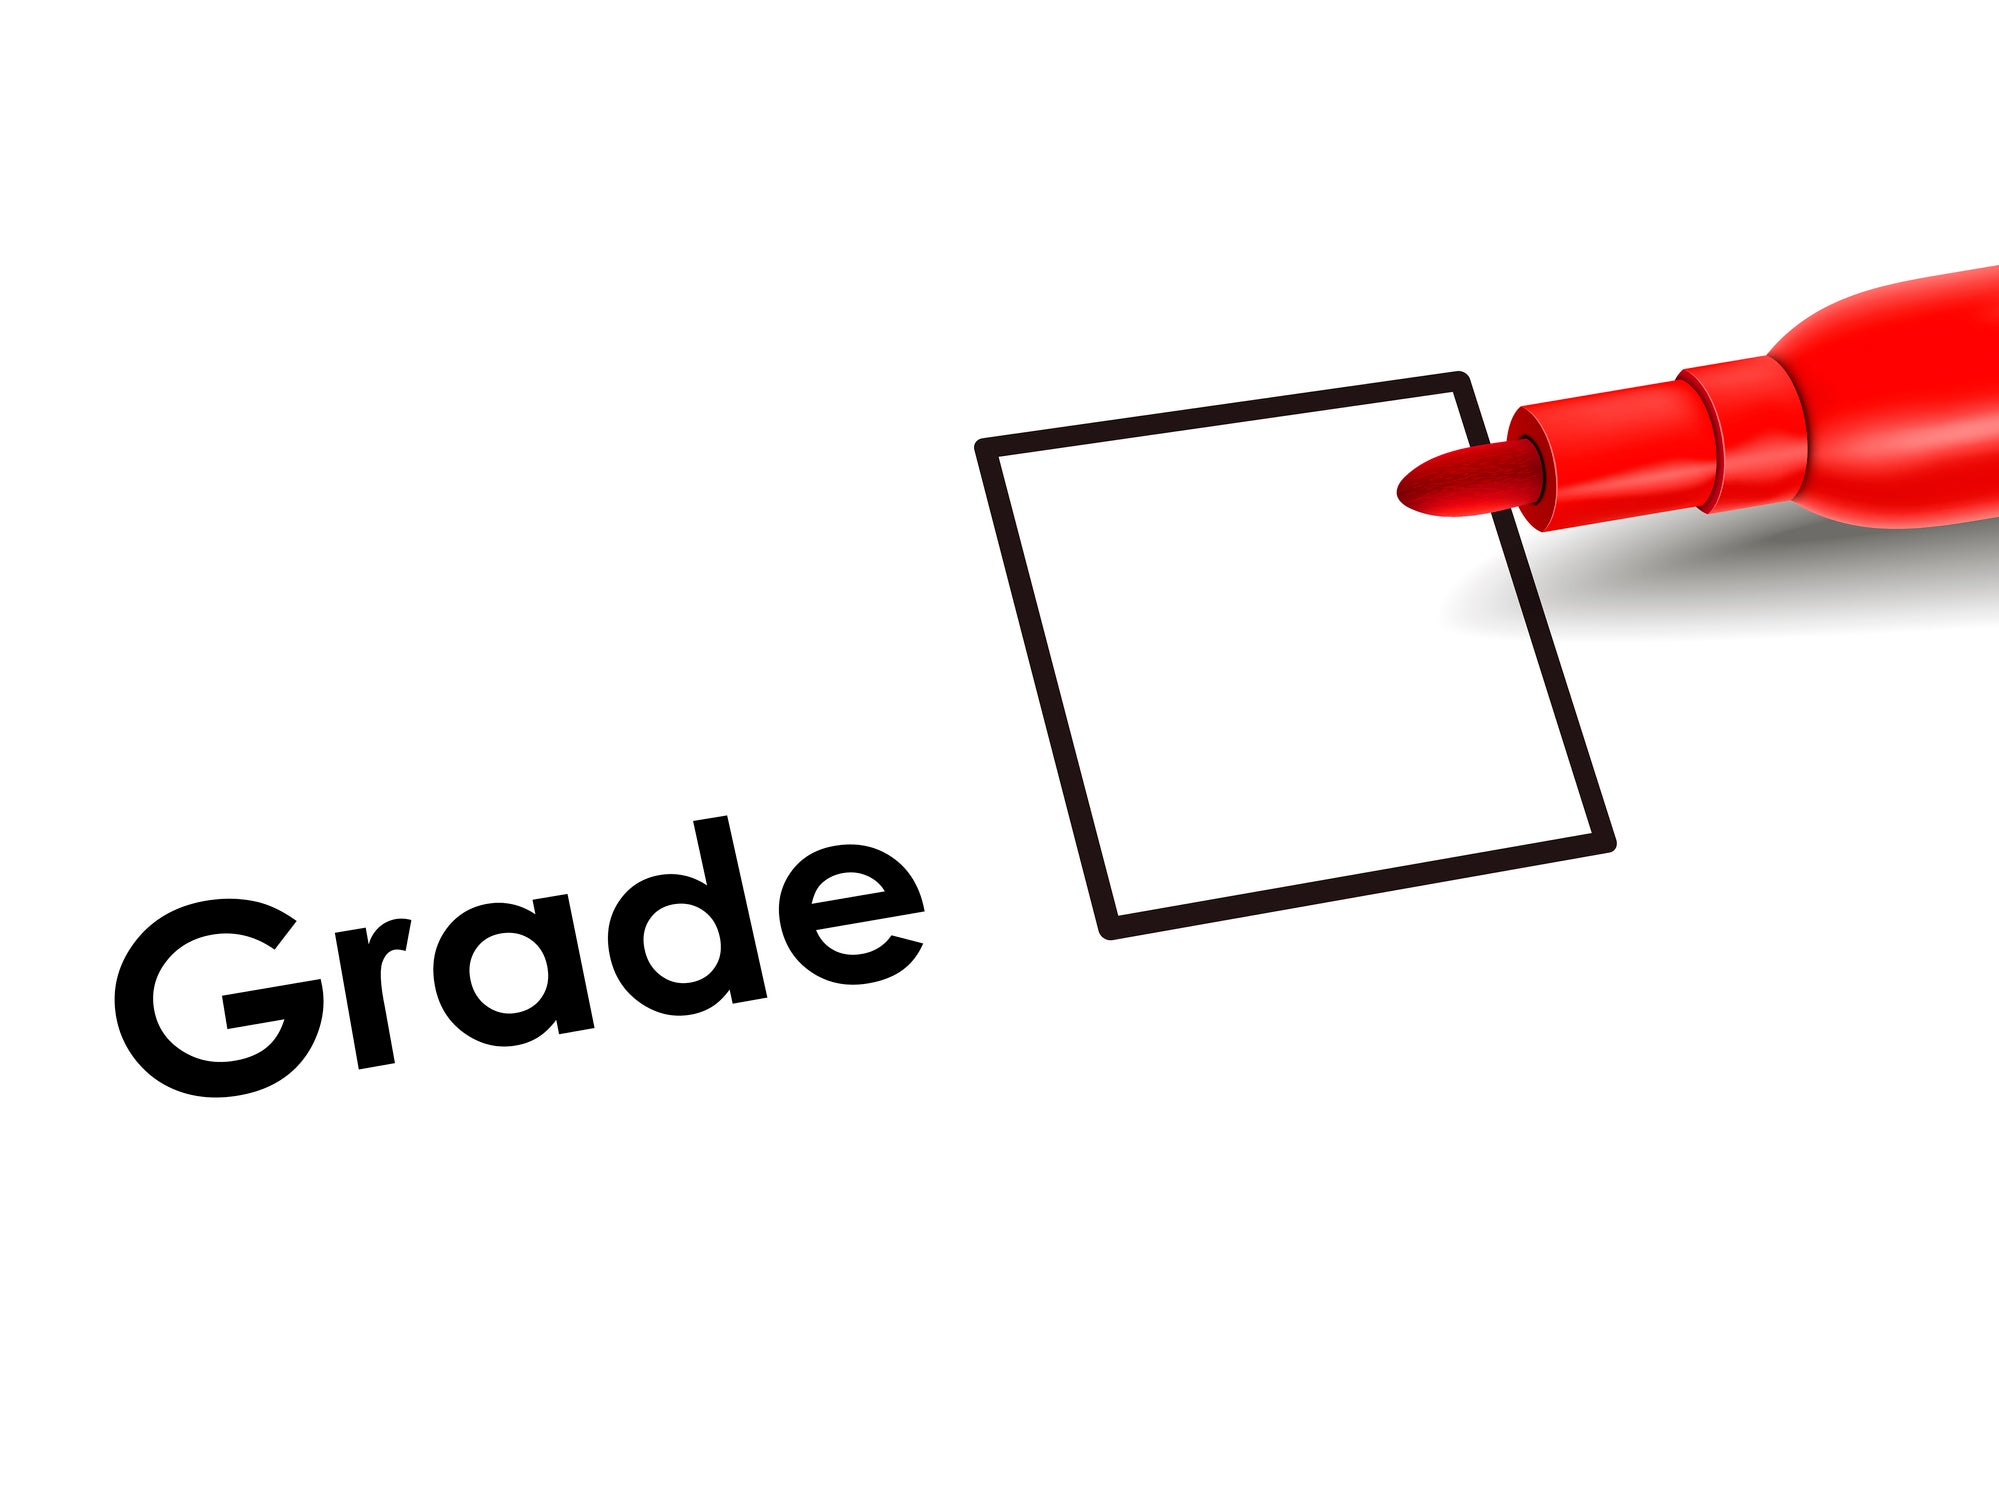 Grade checkbox with red marker